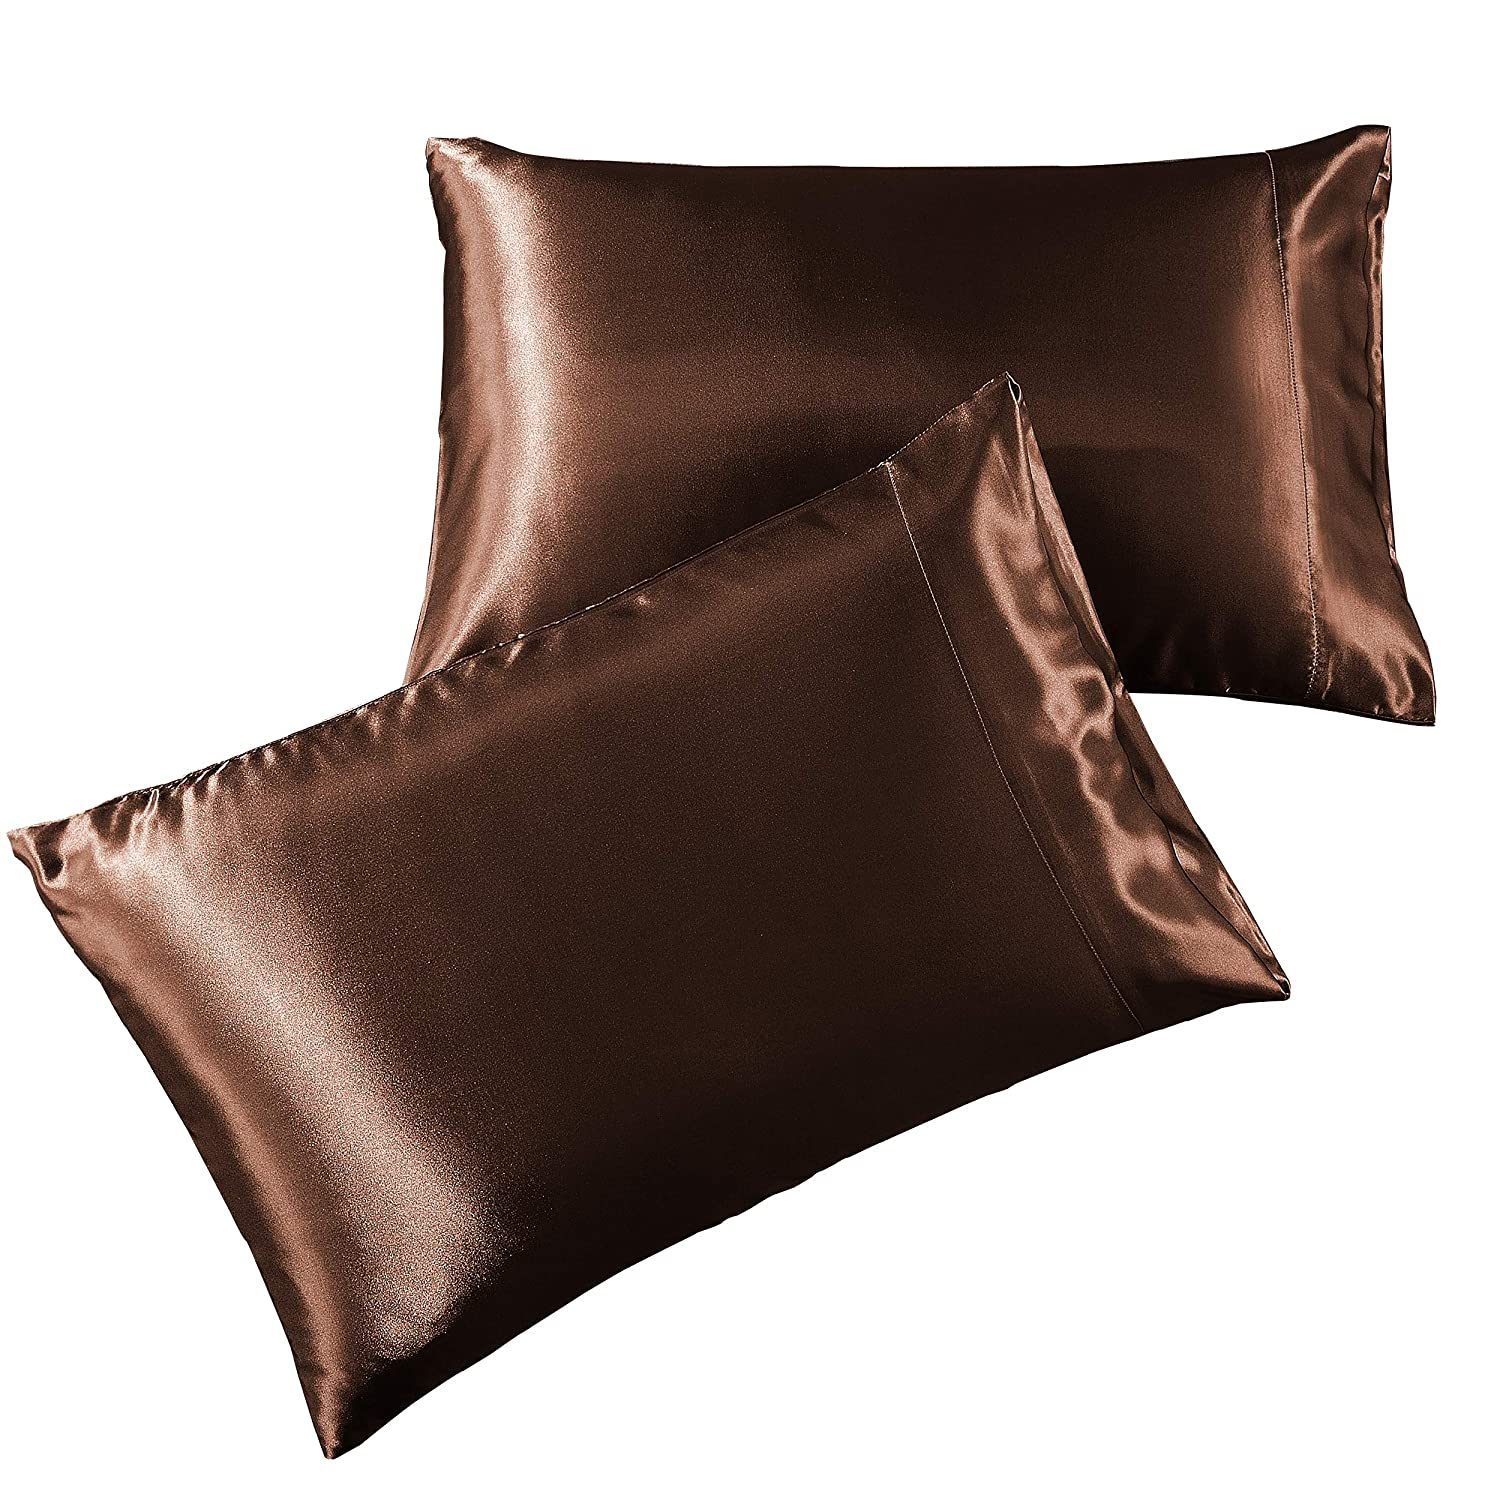 Pure Linen Satin Pillowcase Queen [2-Pack, Brown] - Hotel Luxury Silky Pillow Cases for Hair and Skin - Extra Soft 1800 Double Brushed Microfiber ...